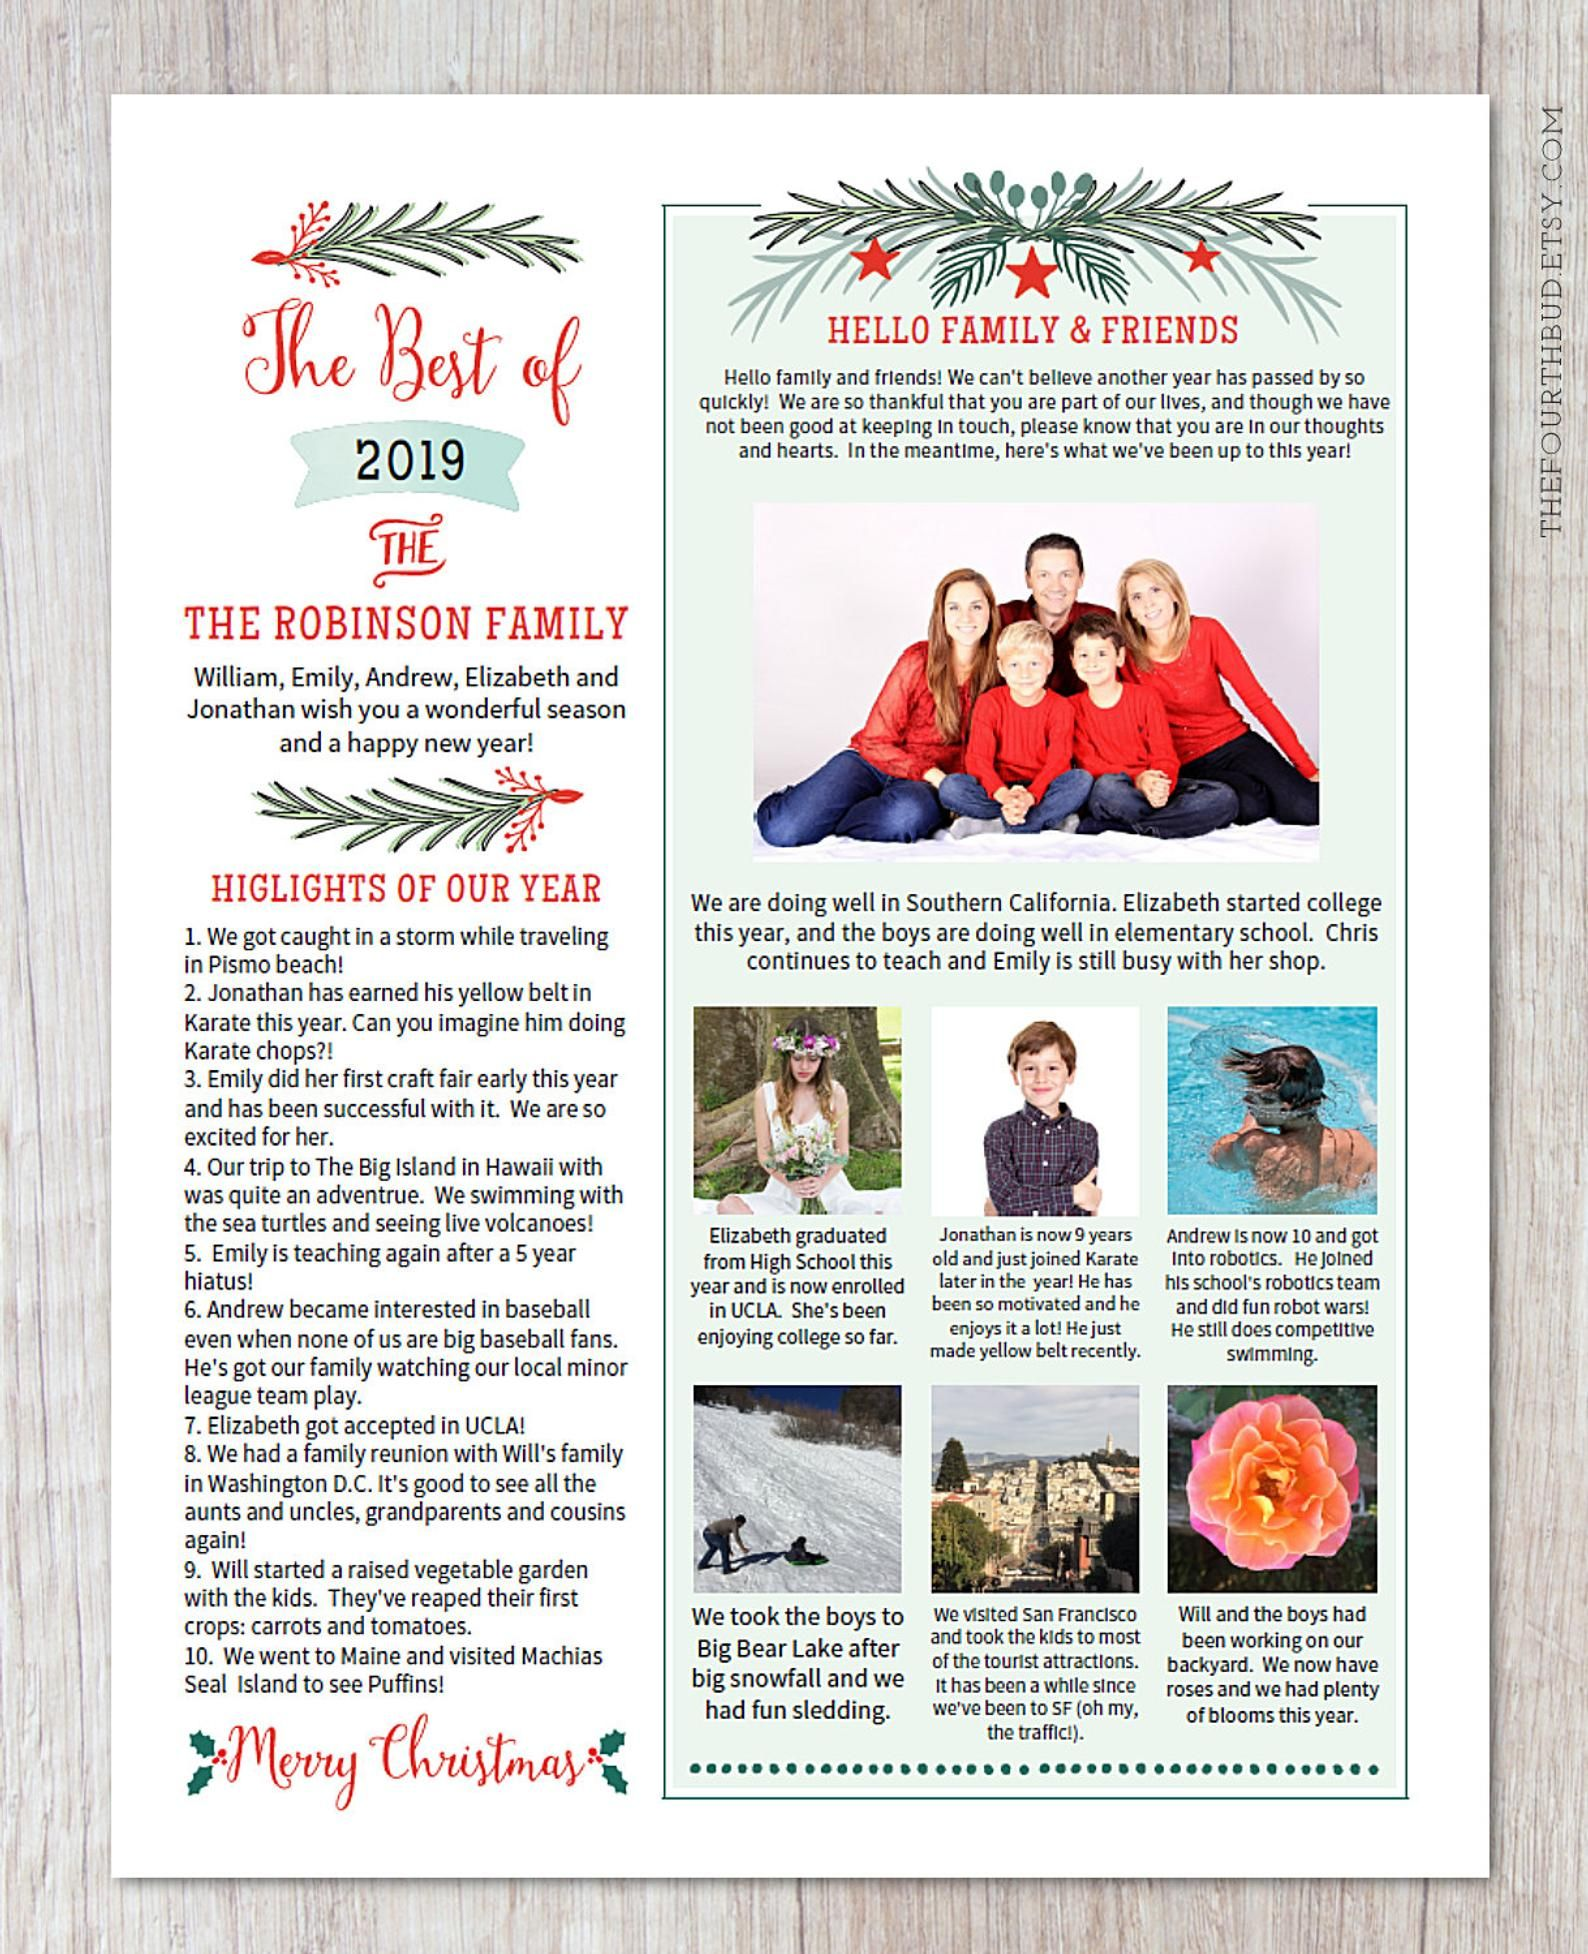 Christmas Newsletter Template In Pdf For Print Year In Etsy Christmas Newsletter Christmas Letter Template Christmas Lettering